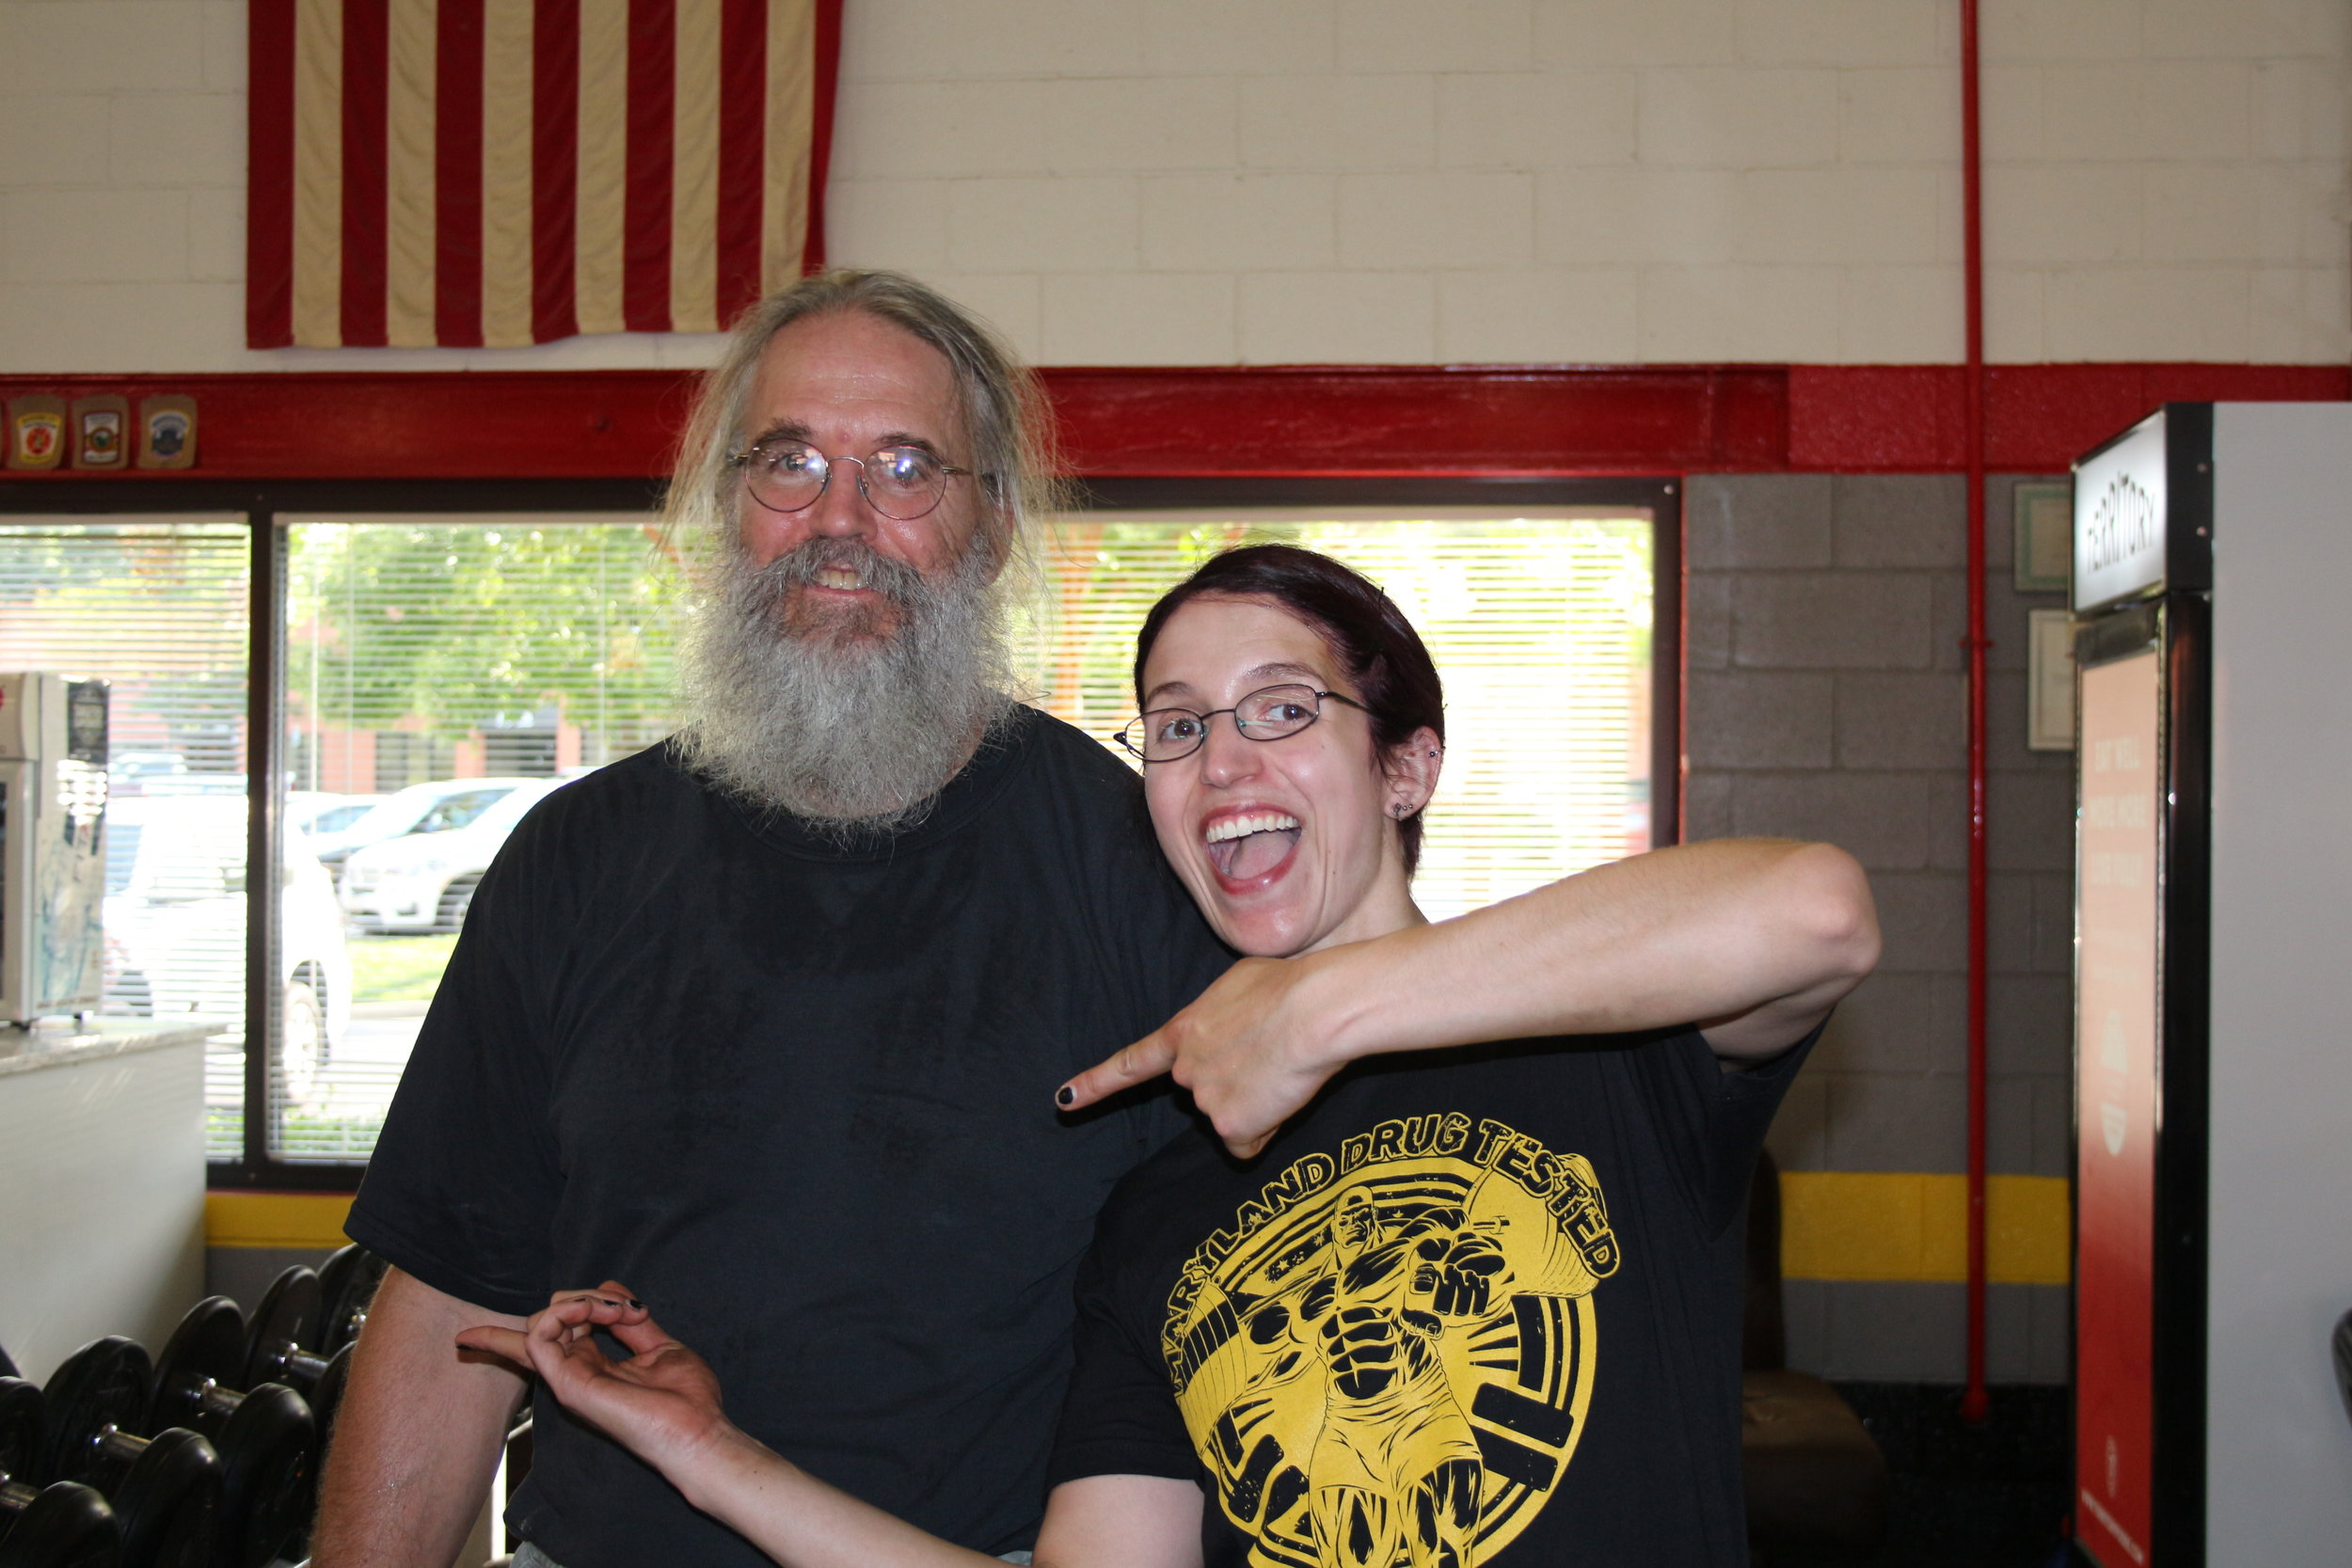 Tim Spickler with his daughter, Brenna at the Drug Tested Maryland State Championships!!! Brenna surprised her Dad by being a spotter/loader for the whole day. :)